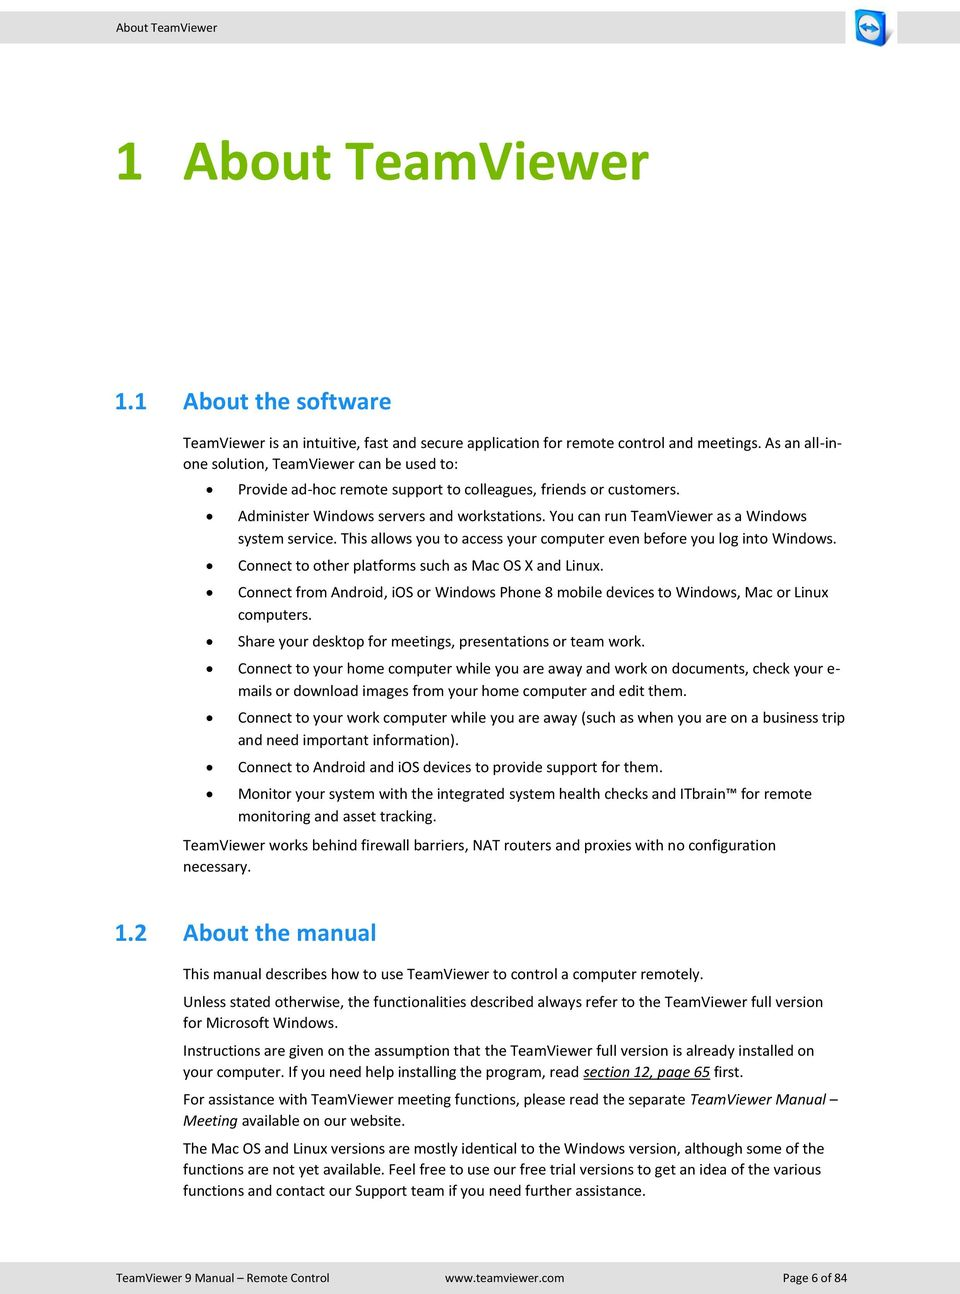 You can run TeamViewer as a Windows system service. This allows you to access your computer even before you log into Windows. Connect to other platforms such as Mac OS X and Linux.